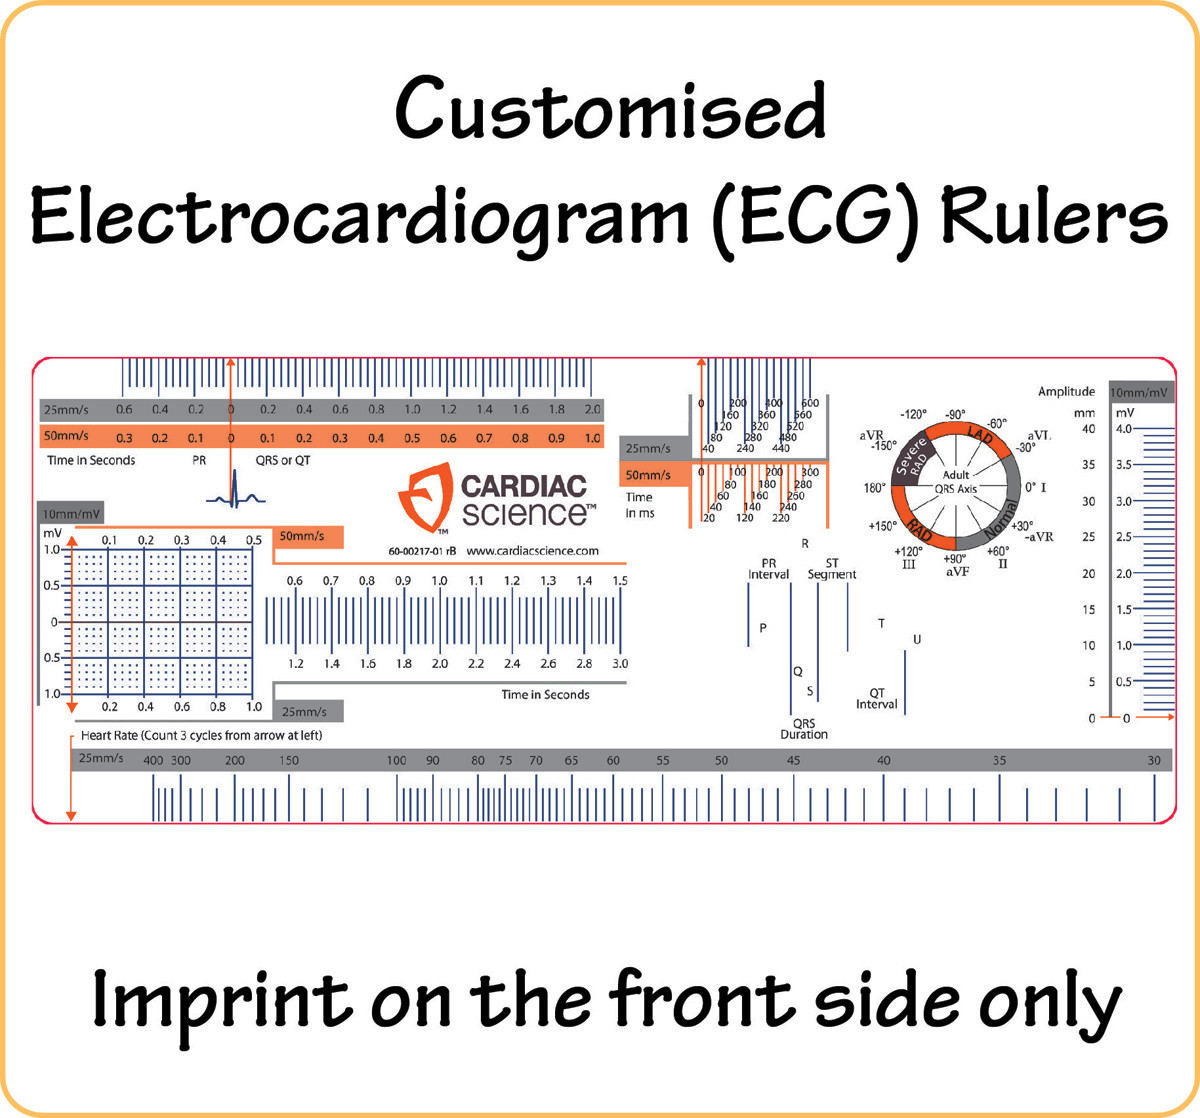 Customised Electrocardiogram Ecg Rulers With Logo Text In Full Diagram Electrocar Diogram Image 1